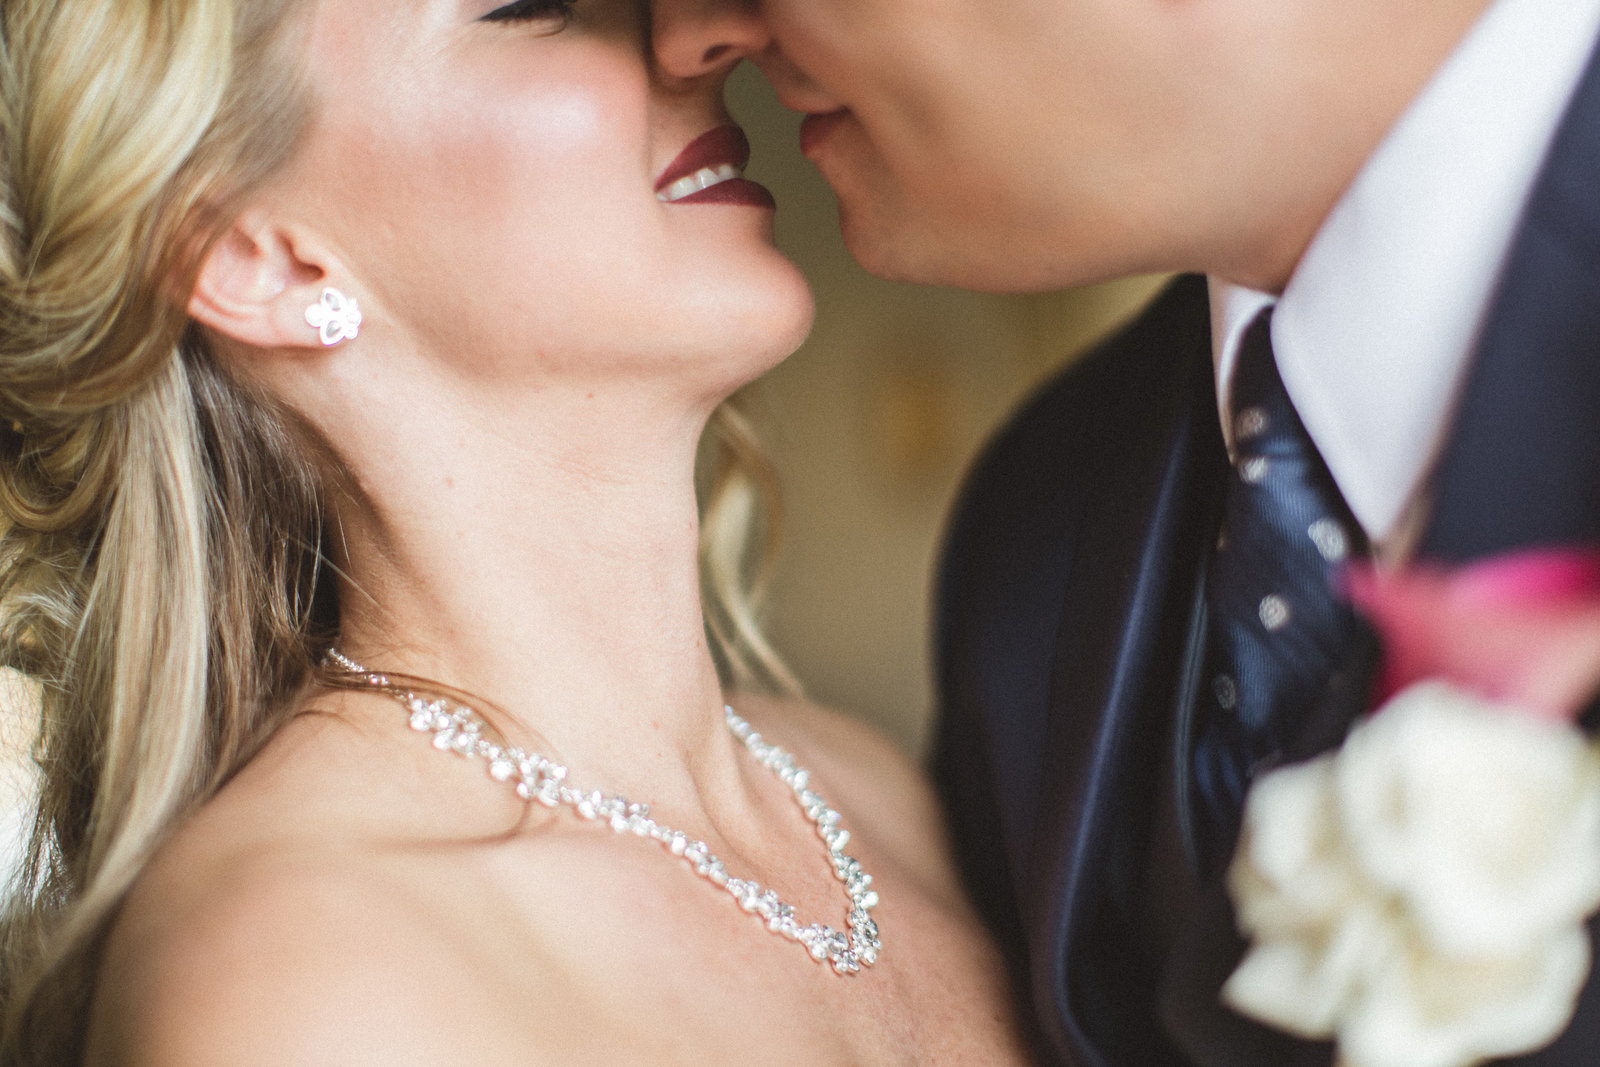 LittleBrookMeadows-ColumbusWeddingPhotography-Drew+Allison-DiBlasioPhoto-226